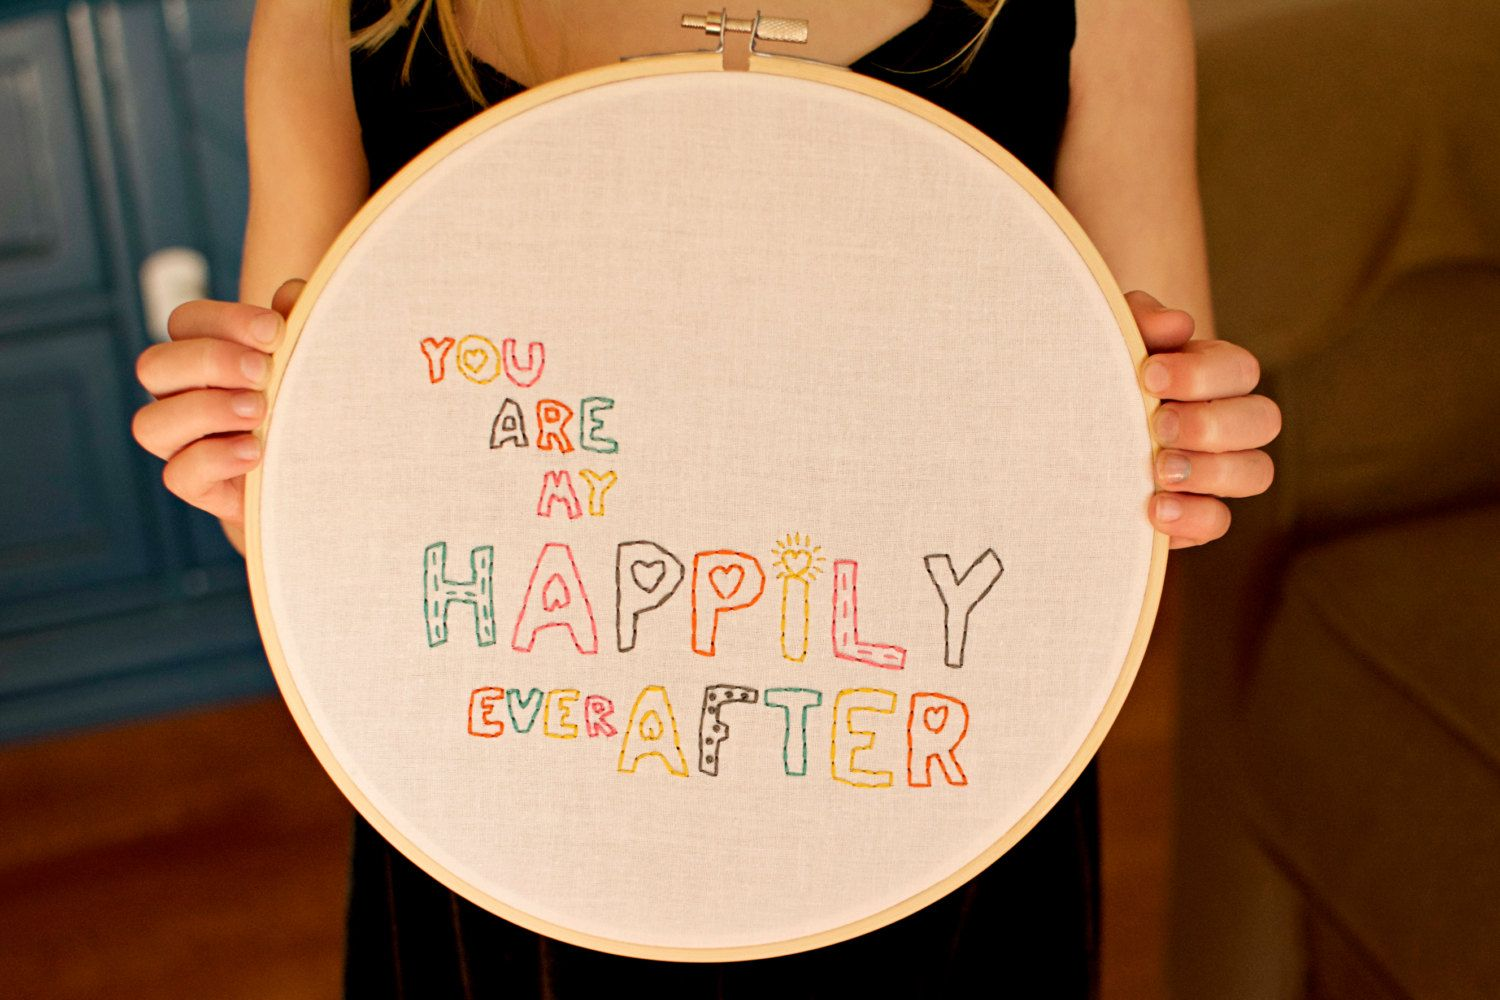 you are my happily ever after- hoop art, wall art, embroidery, love, relationship, embroidery hoop, couple, embroidery hoop art by SentimentalSundays on Etsy